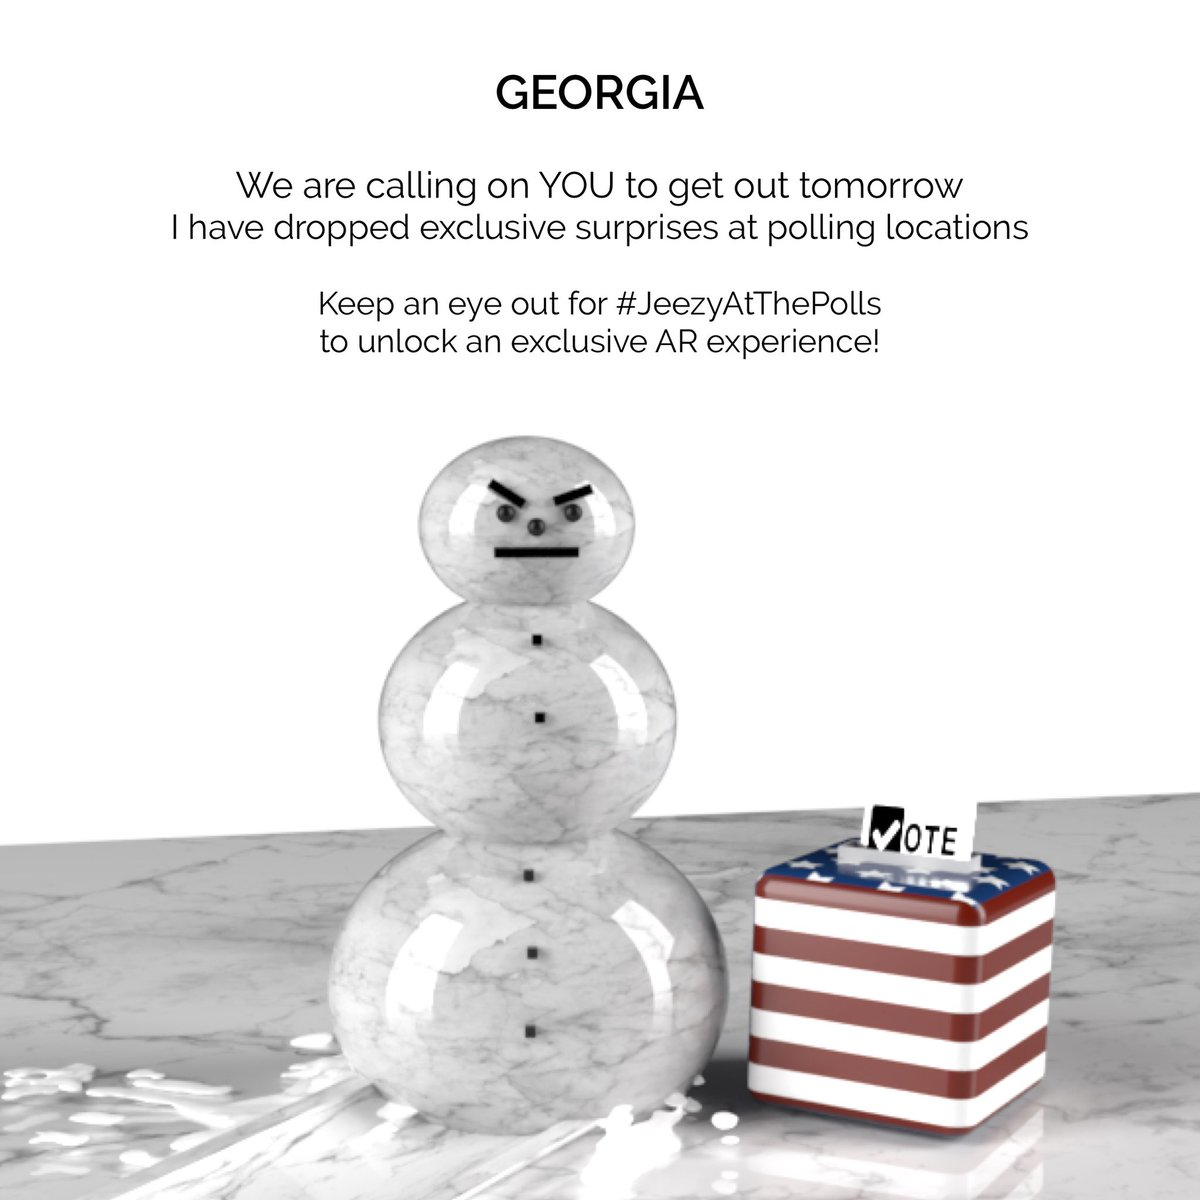 Georgia, we are calling on YOU to get out tomorrow, January 5th, to cast your vote in the Senate runoff election. To celebrate this election and all Georgians, I am dropping surprises at polling locations across ATL tomorrow. Remember, to keep an eye out for #JeezyAtThePolls https://t.co/tbYSczd9uT